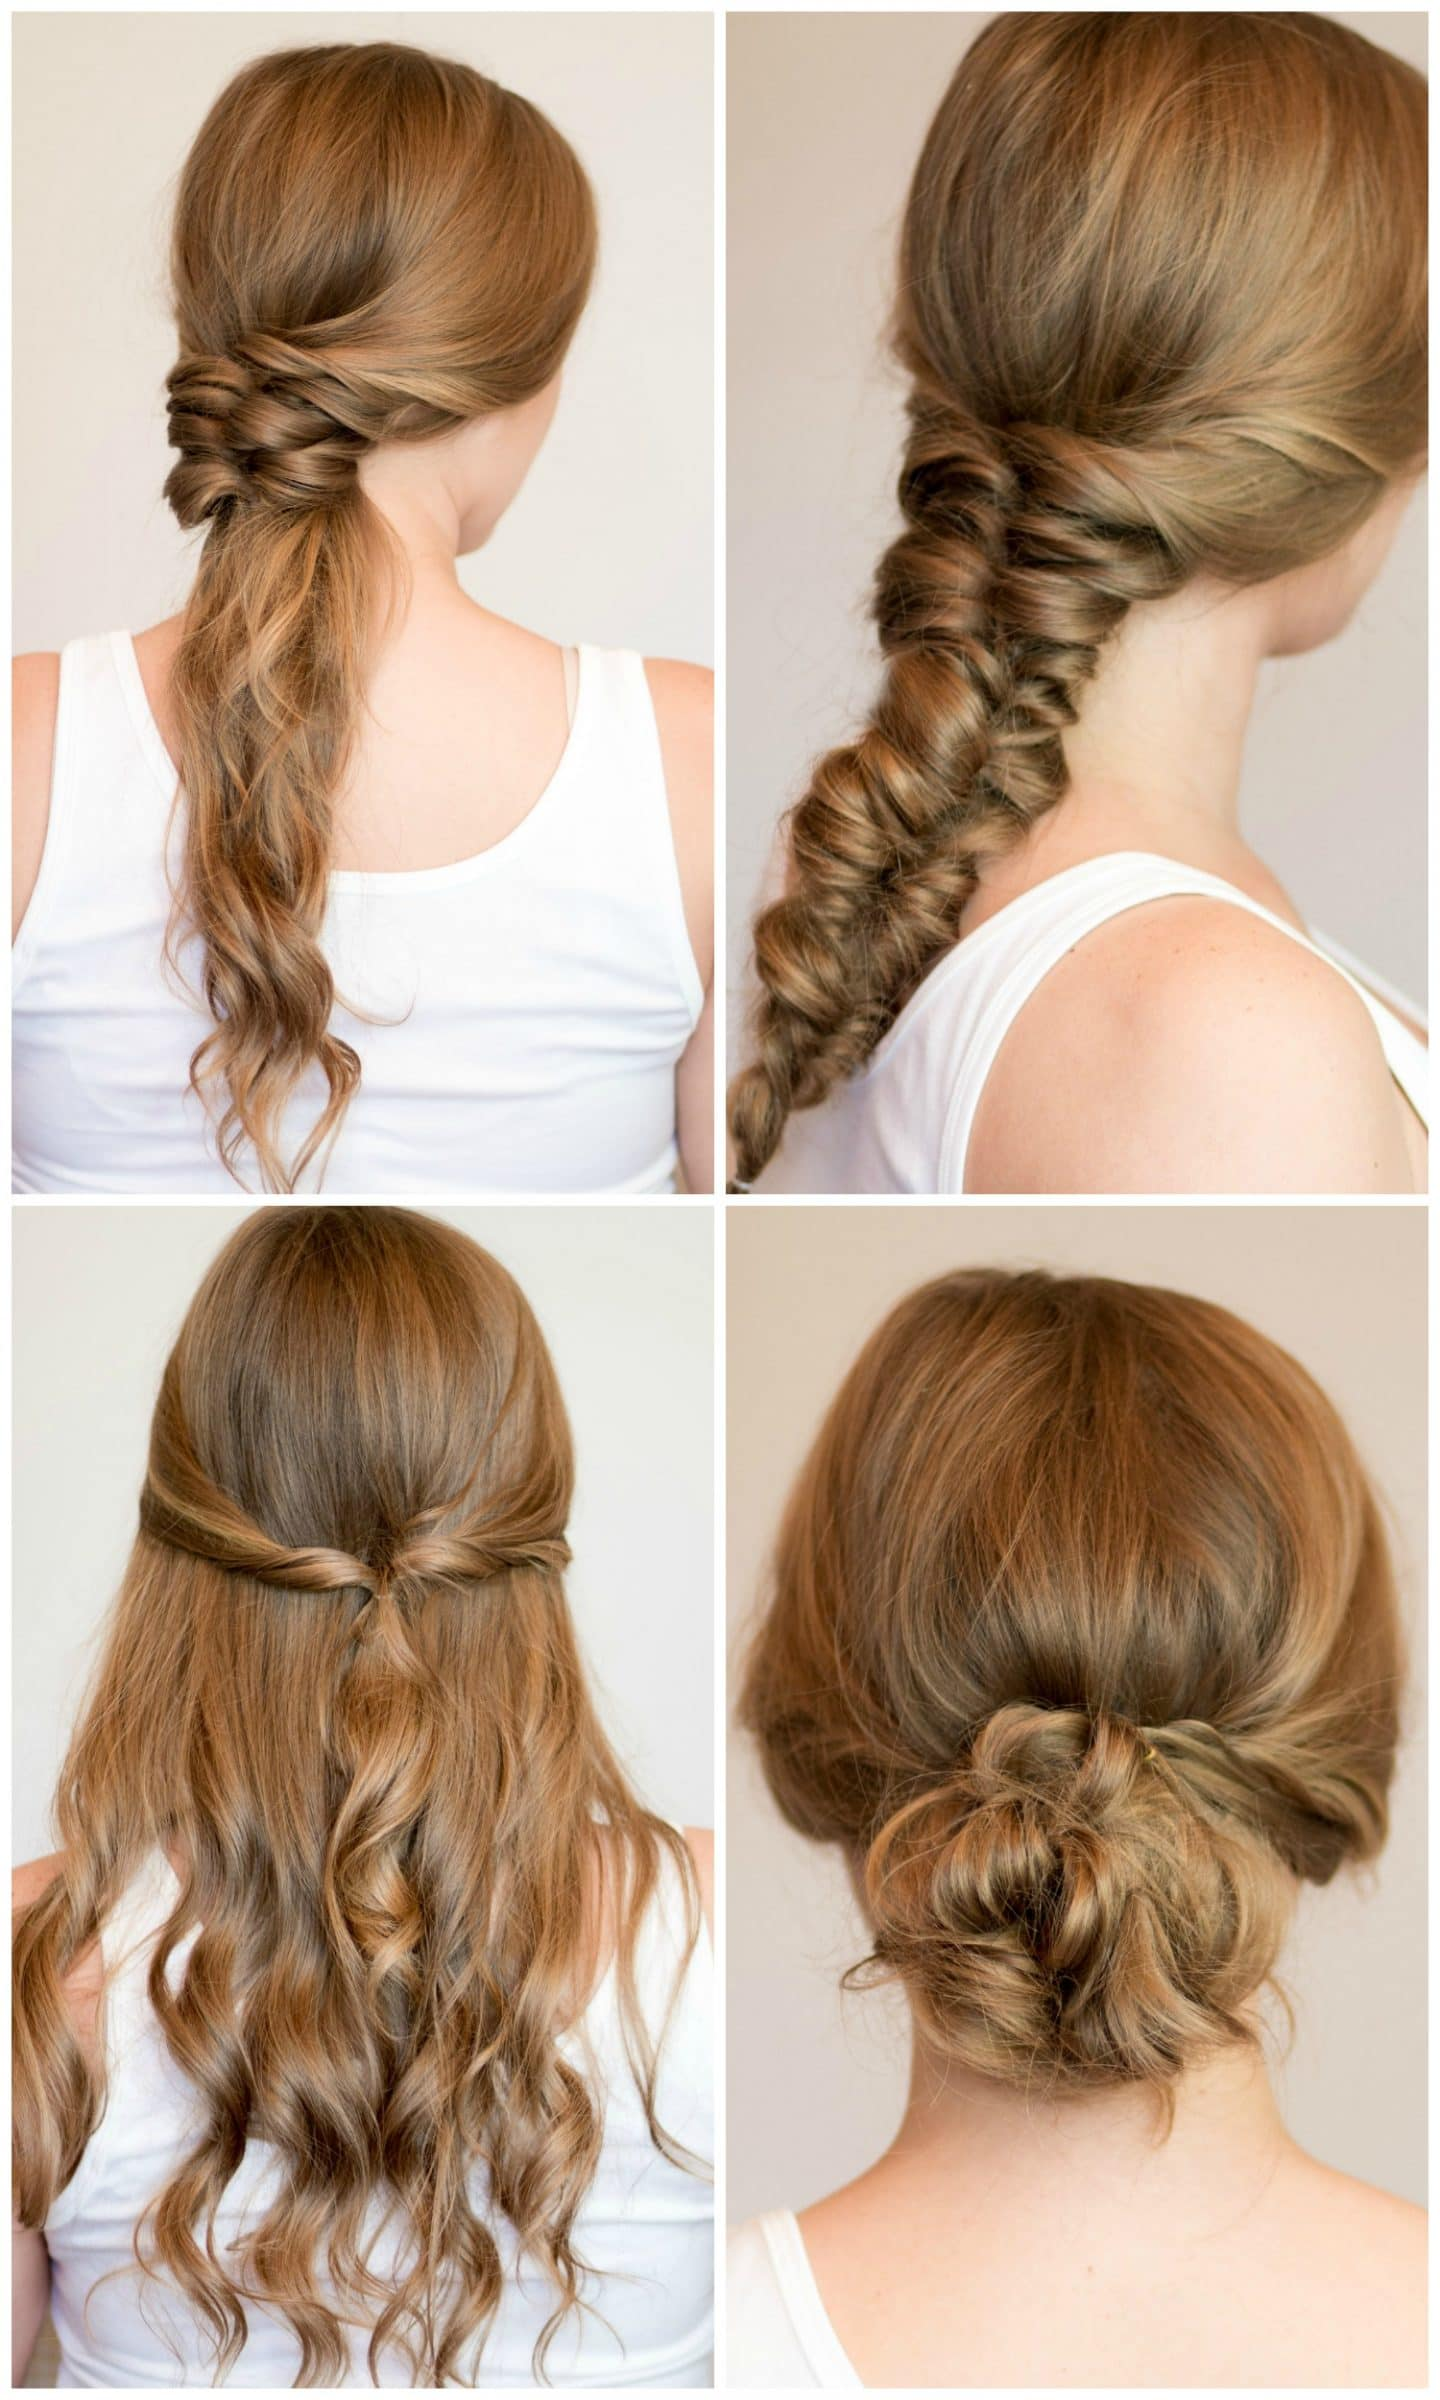 4 Easy Heatless Hairstyles For Long Hair Tutorial